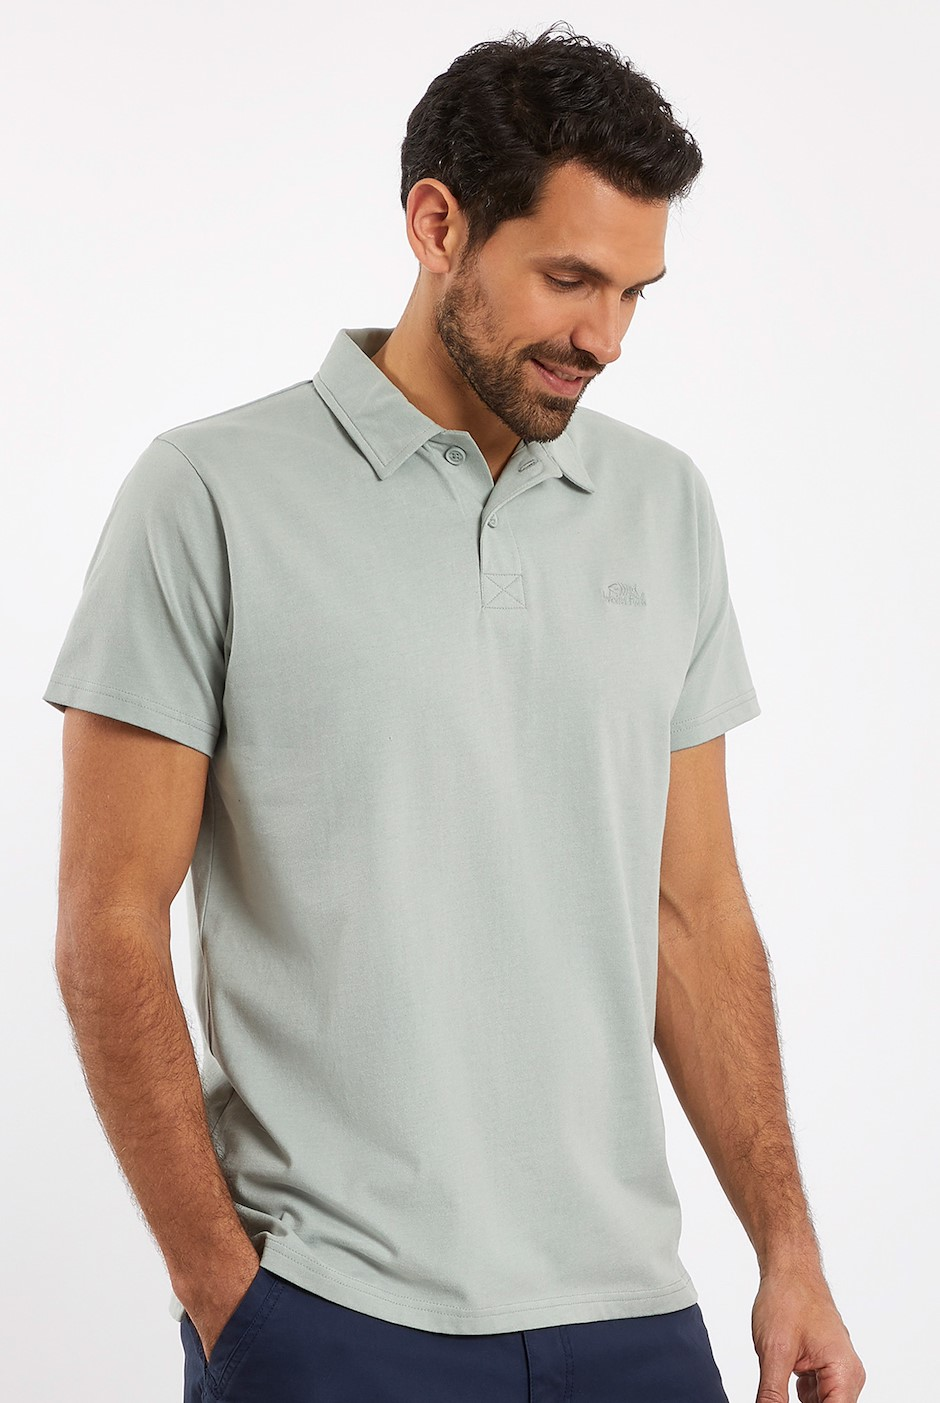 Quay Branded Polo Shirt Pistachio